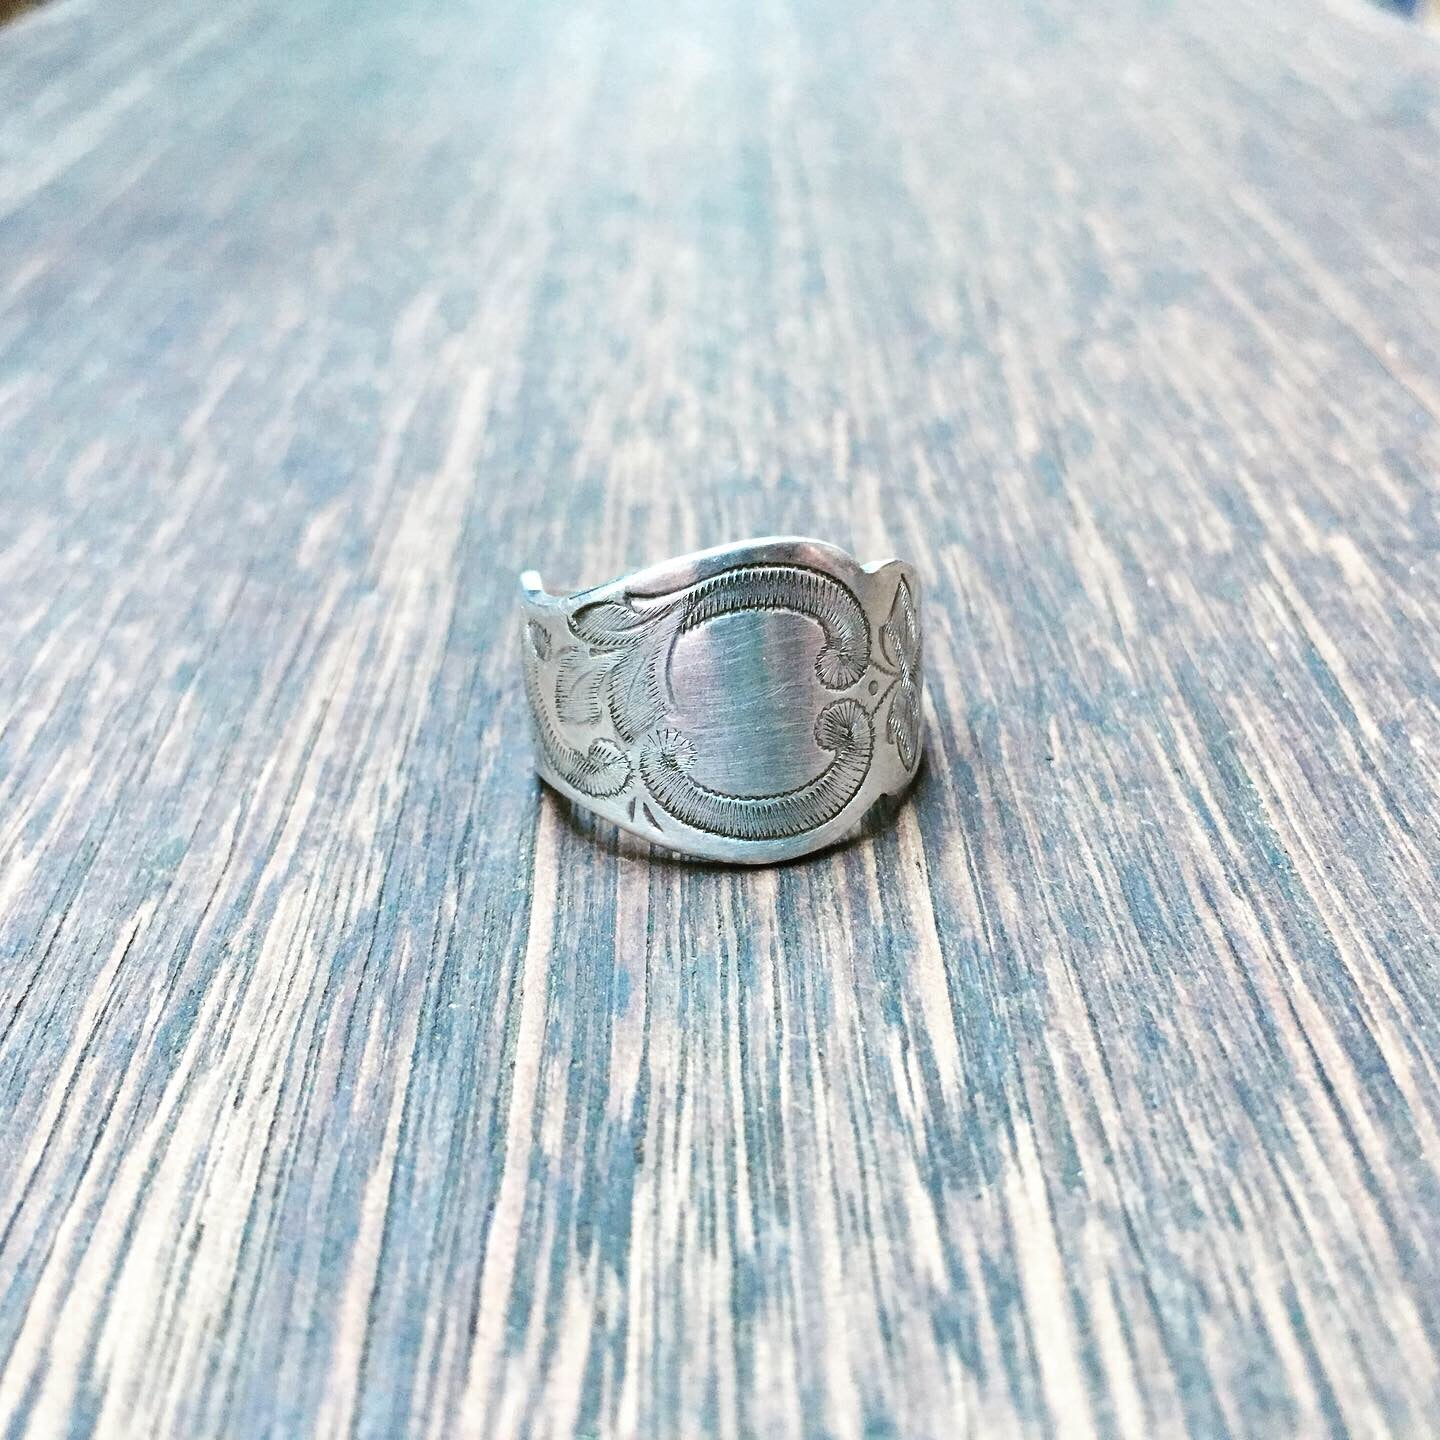 Spoon Ring handcrafted from antique engraved spoon